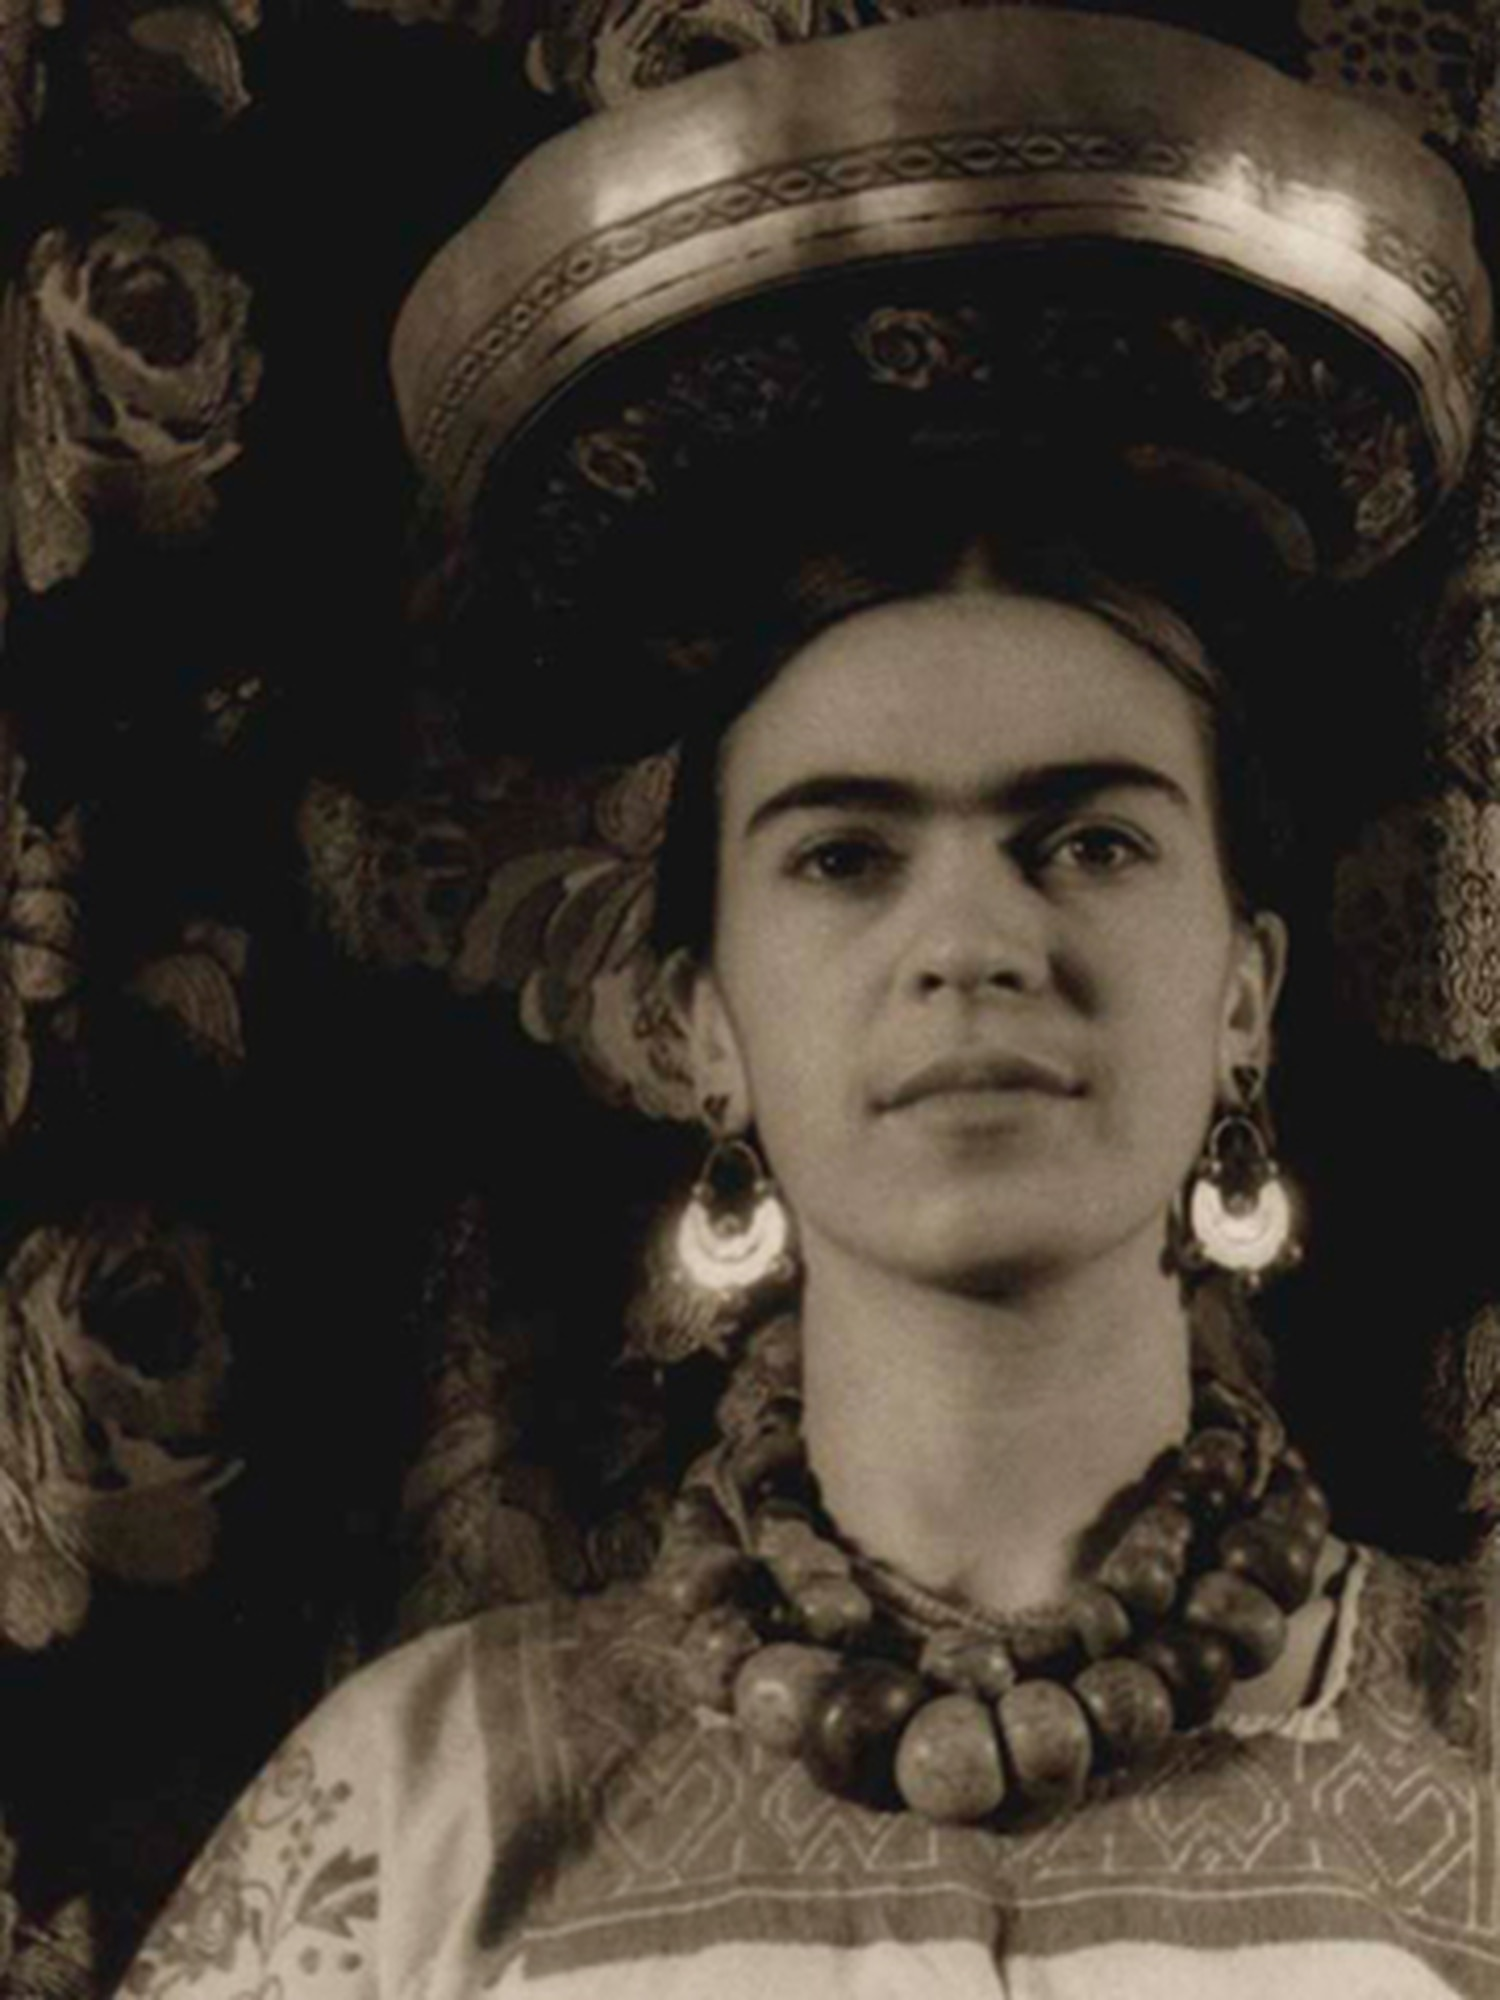 """Van Vechten's image of Kahlo, """"Frida with a Michoacán Gourd On Head,"""" was taken as Kahlo experimented with Mexican imagery."""